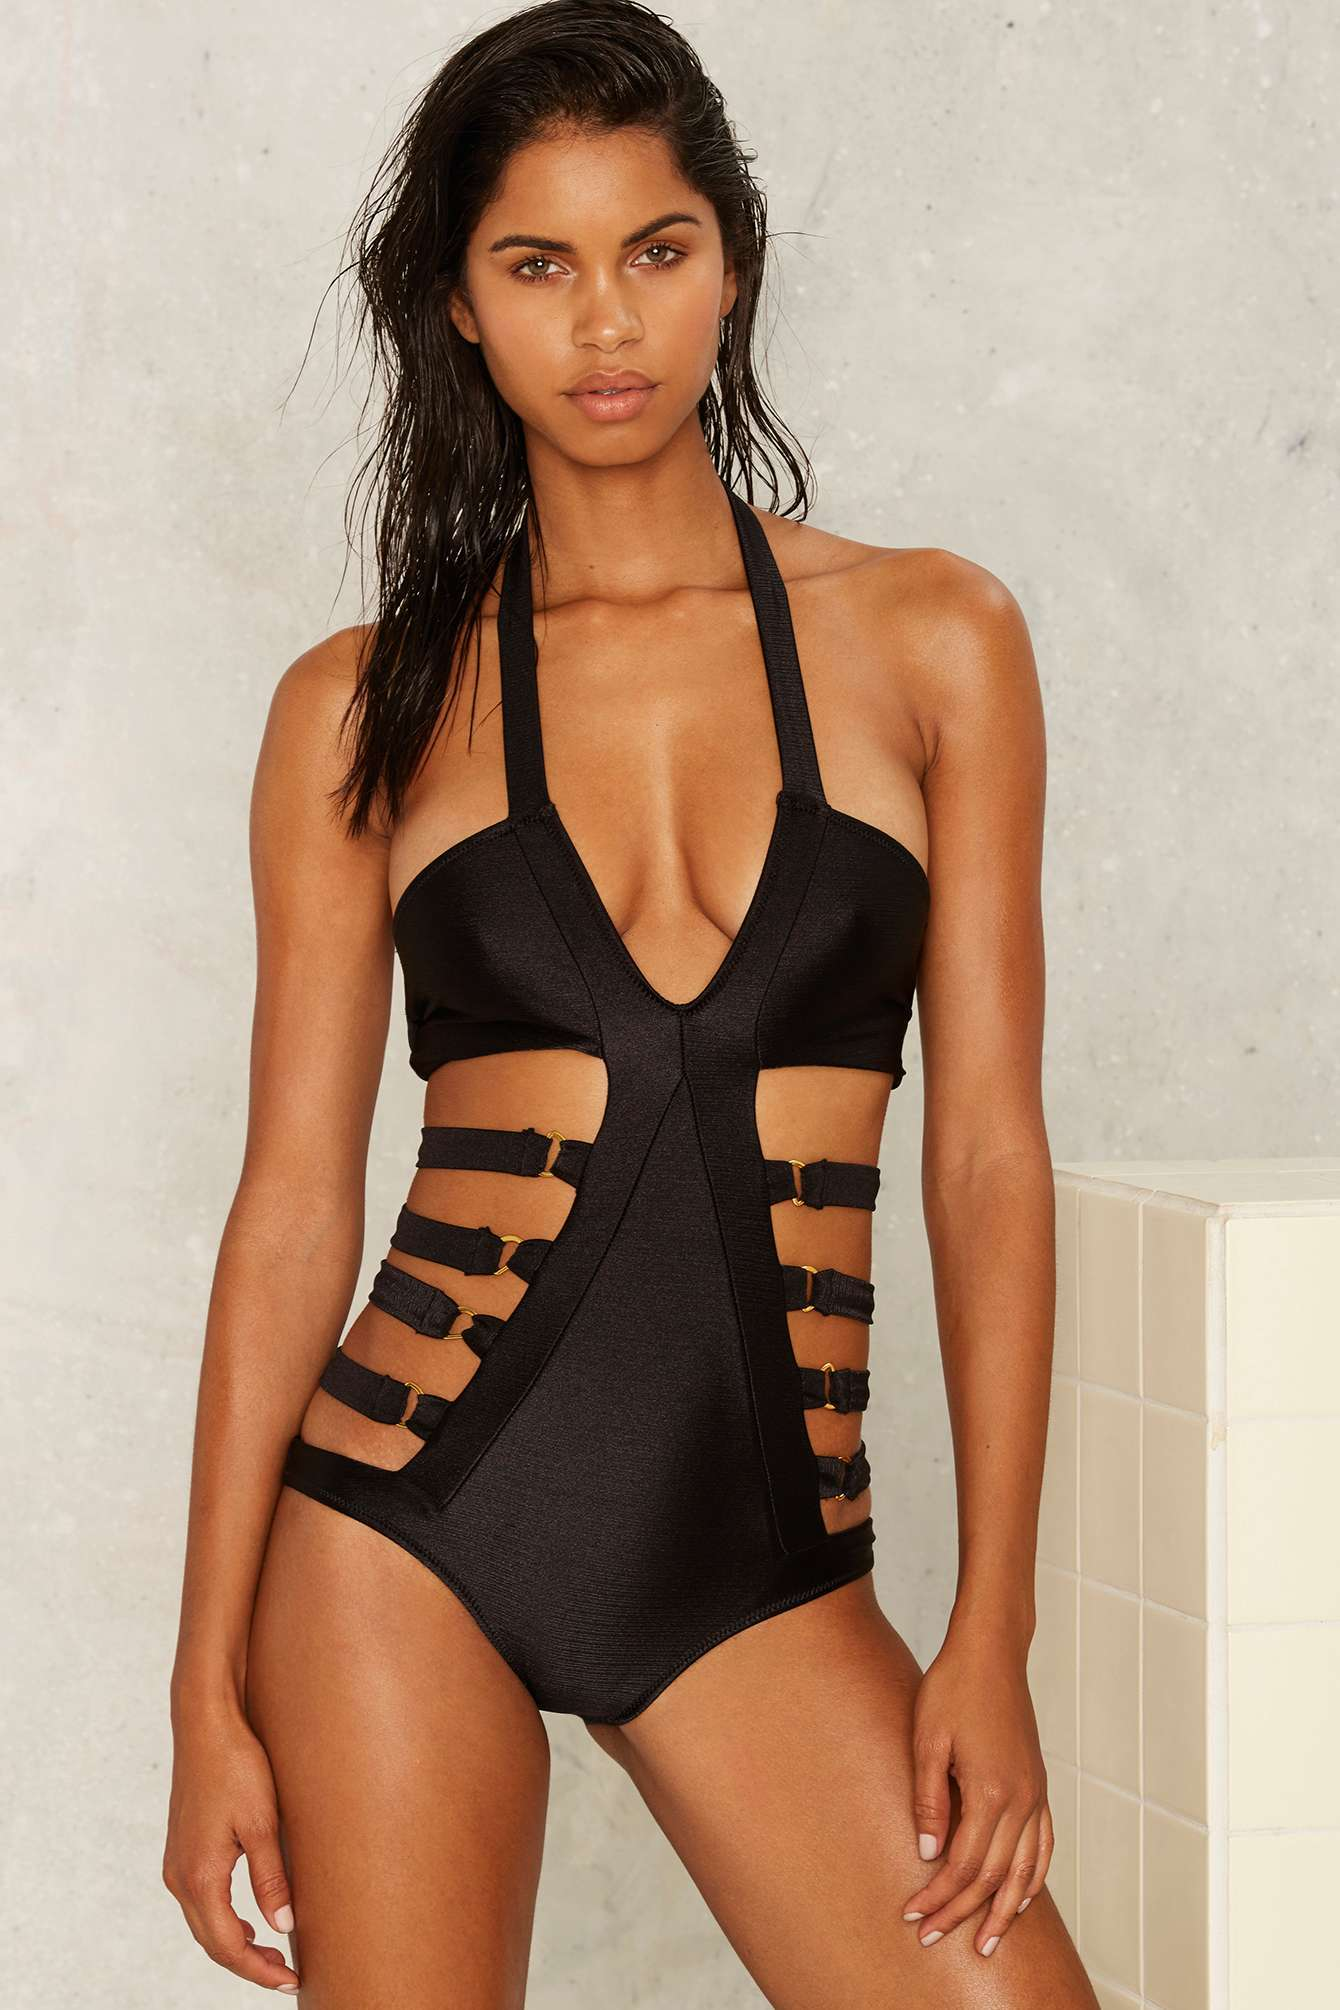 Bathing Suit: Nastygal.com $26.68